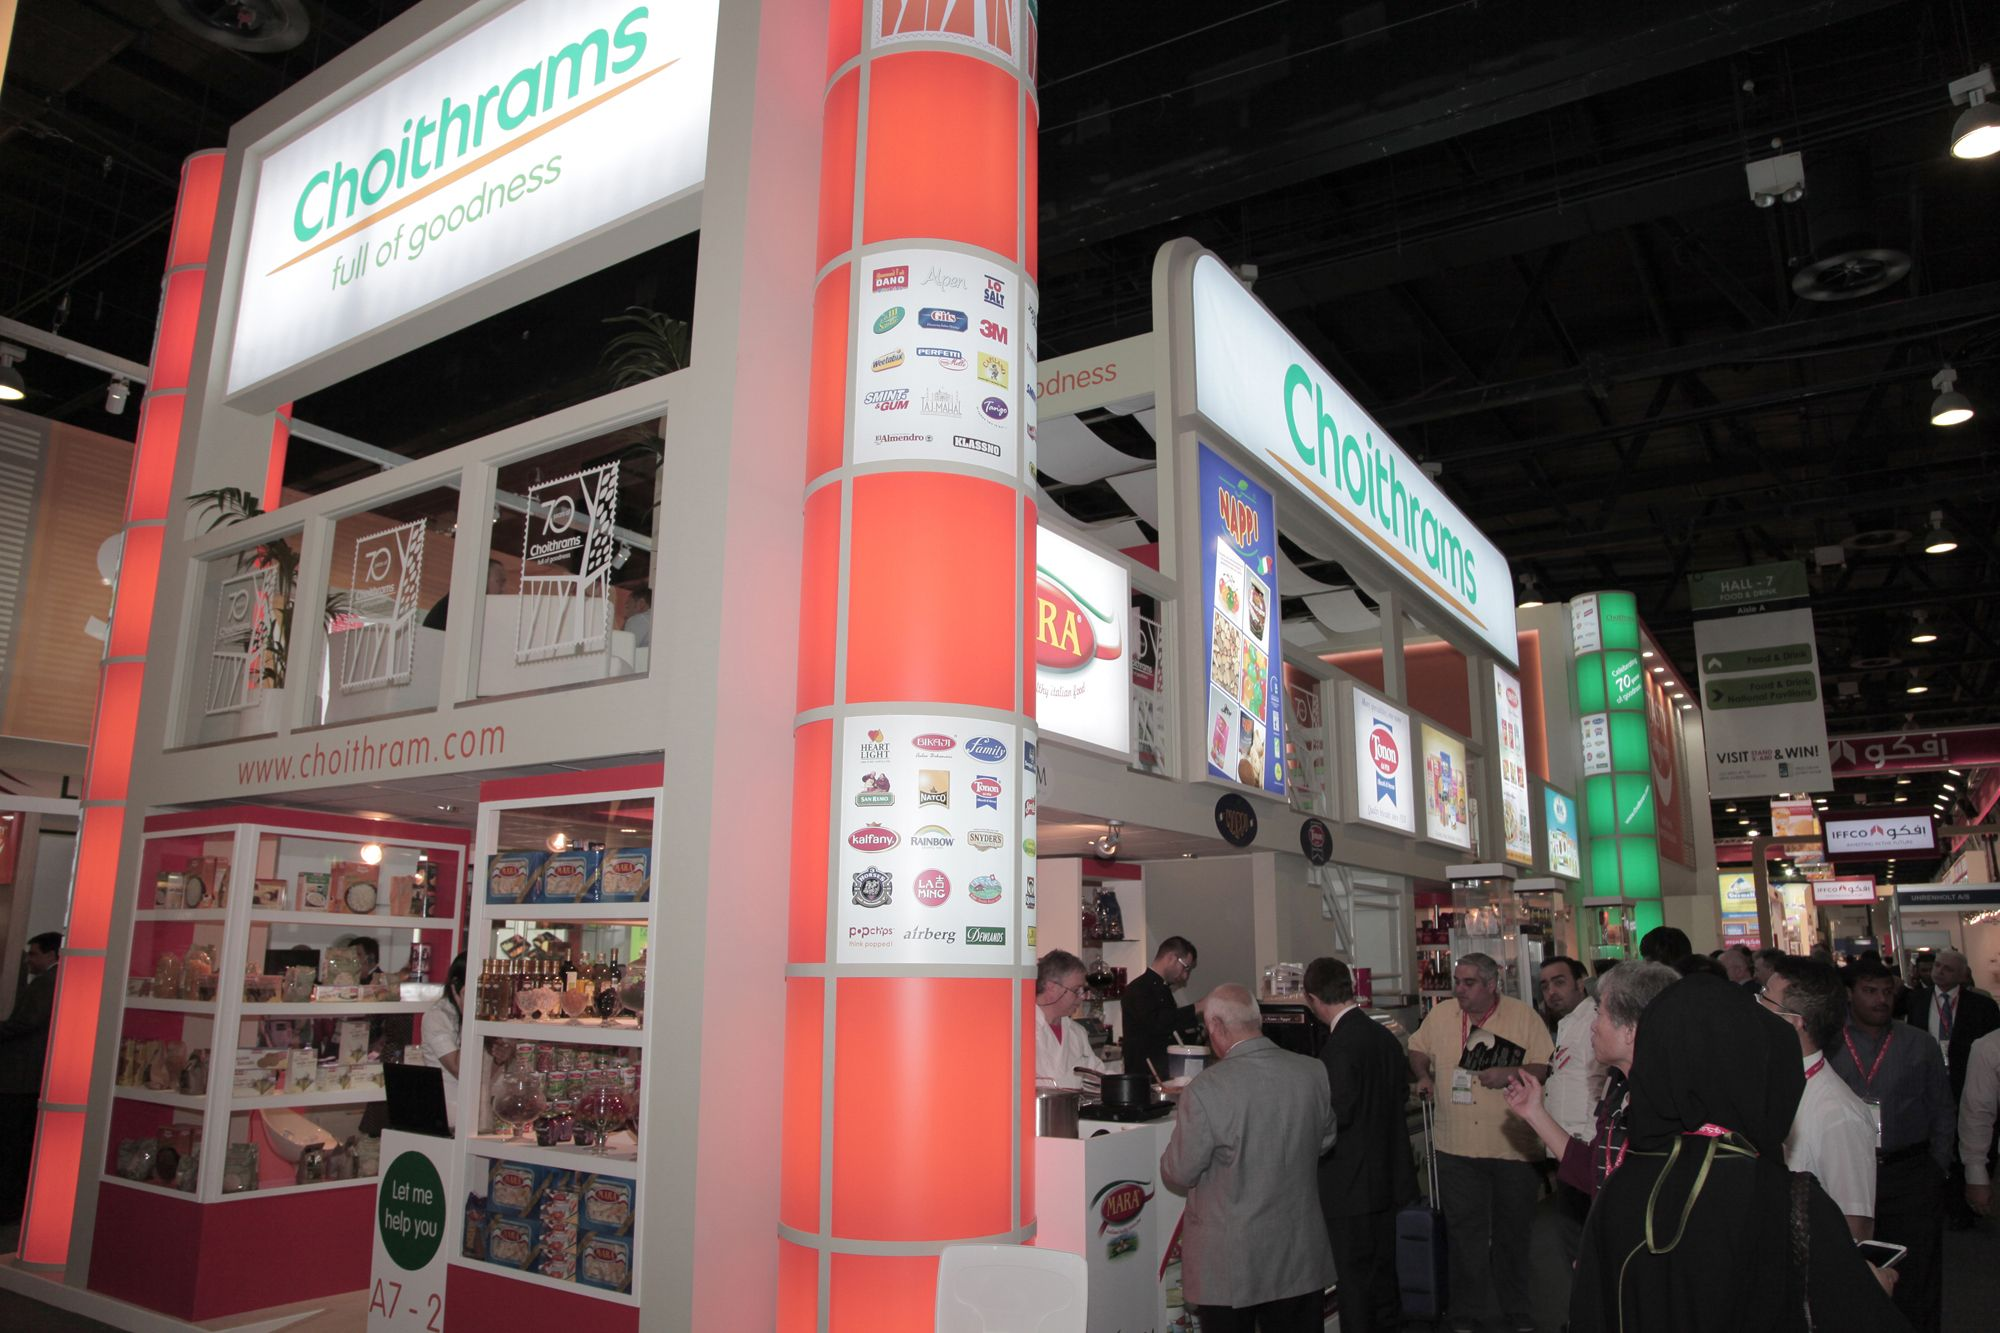 #Choithrams @ GulFood. #GulFood #2013